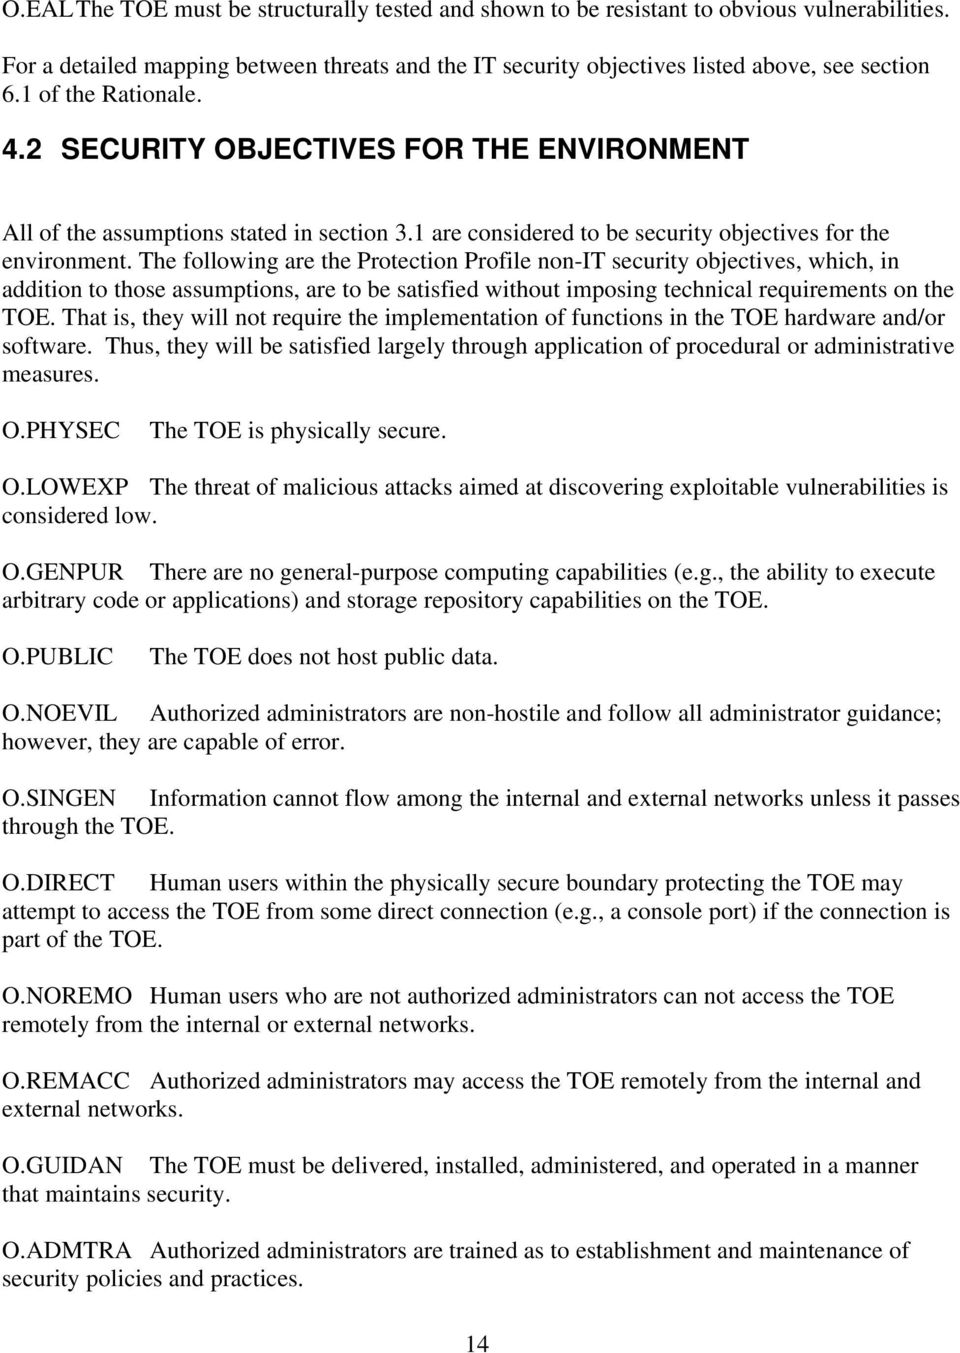 The following are the Protection Profile non-it security objectives, which, in addition to those assumptions, are to be satisfied without imposing technical requirements on the TOE.